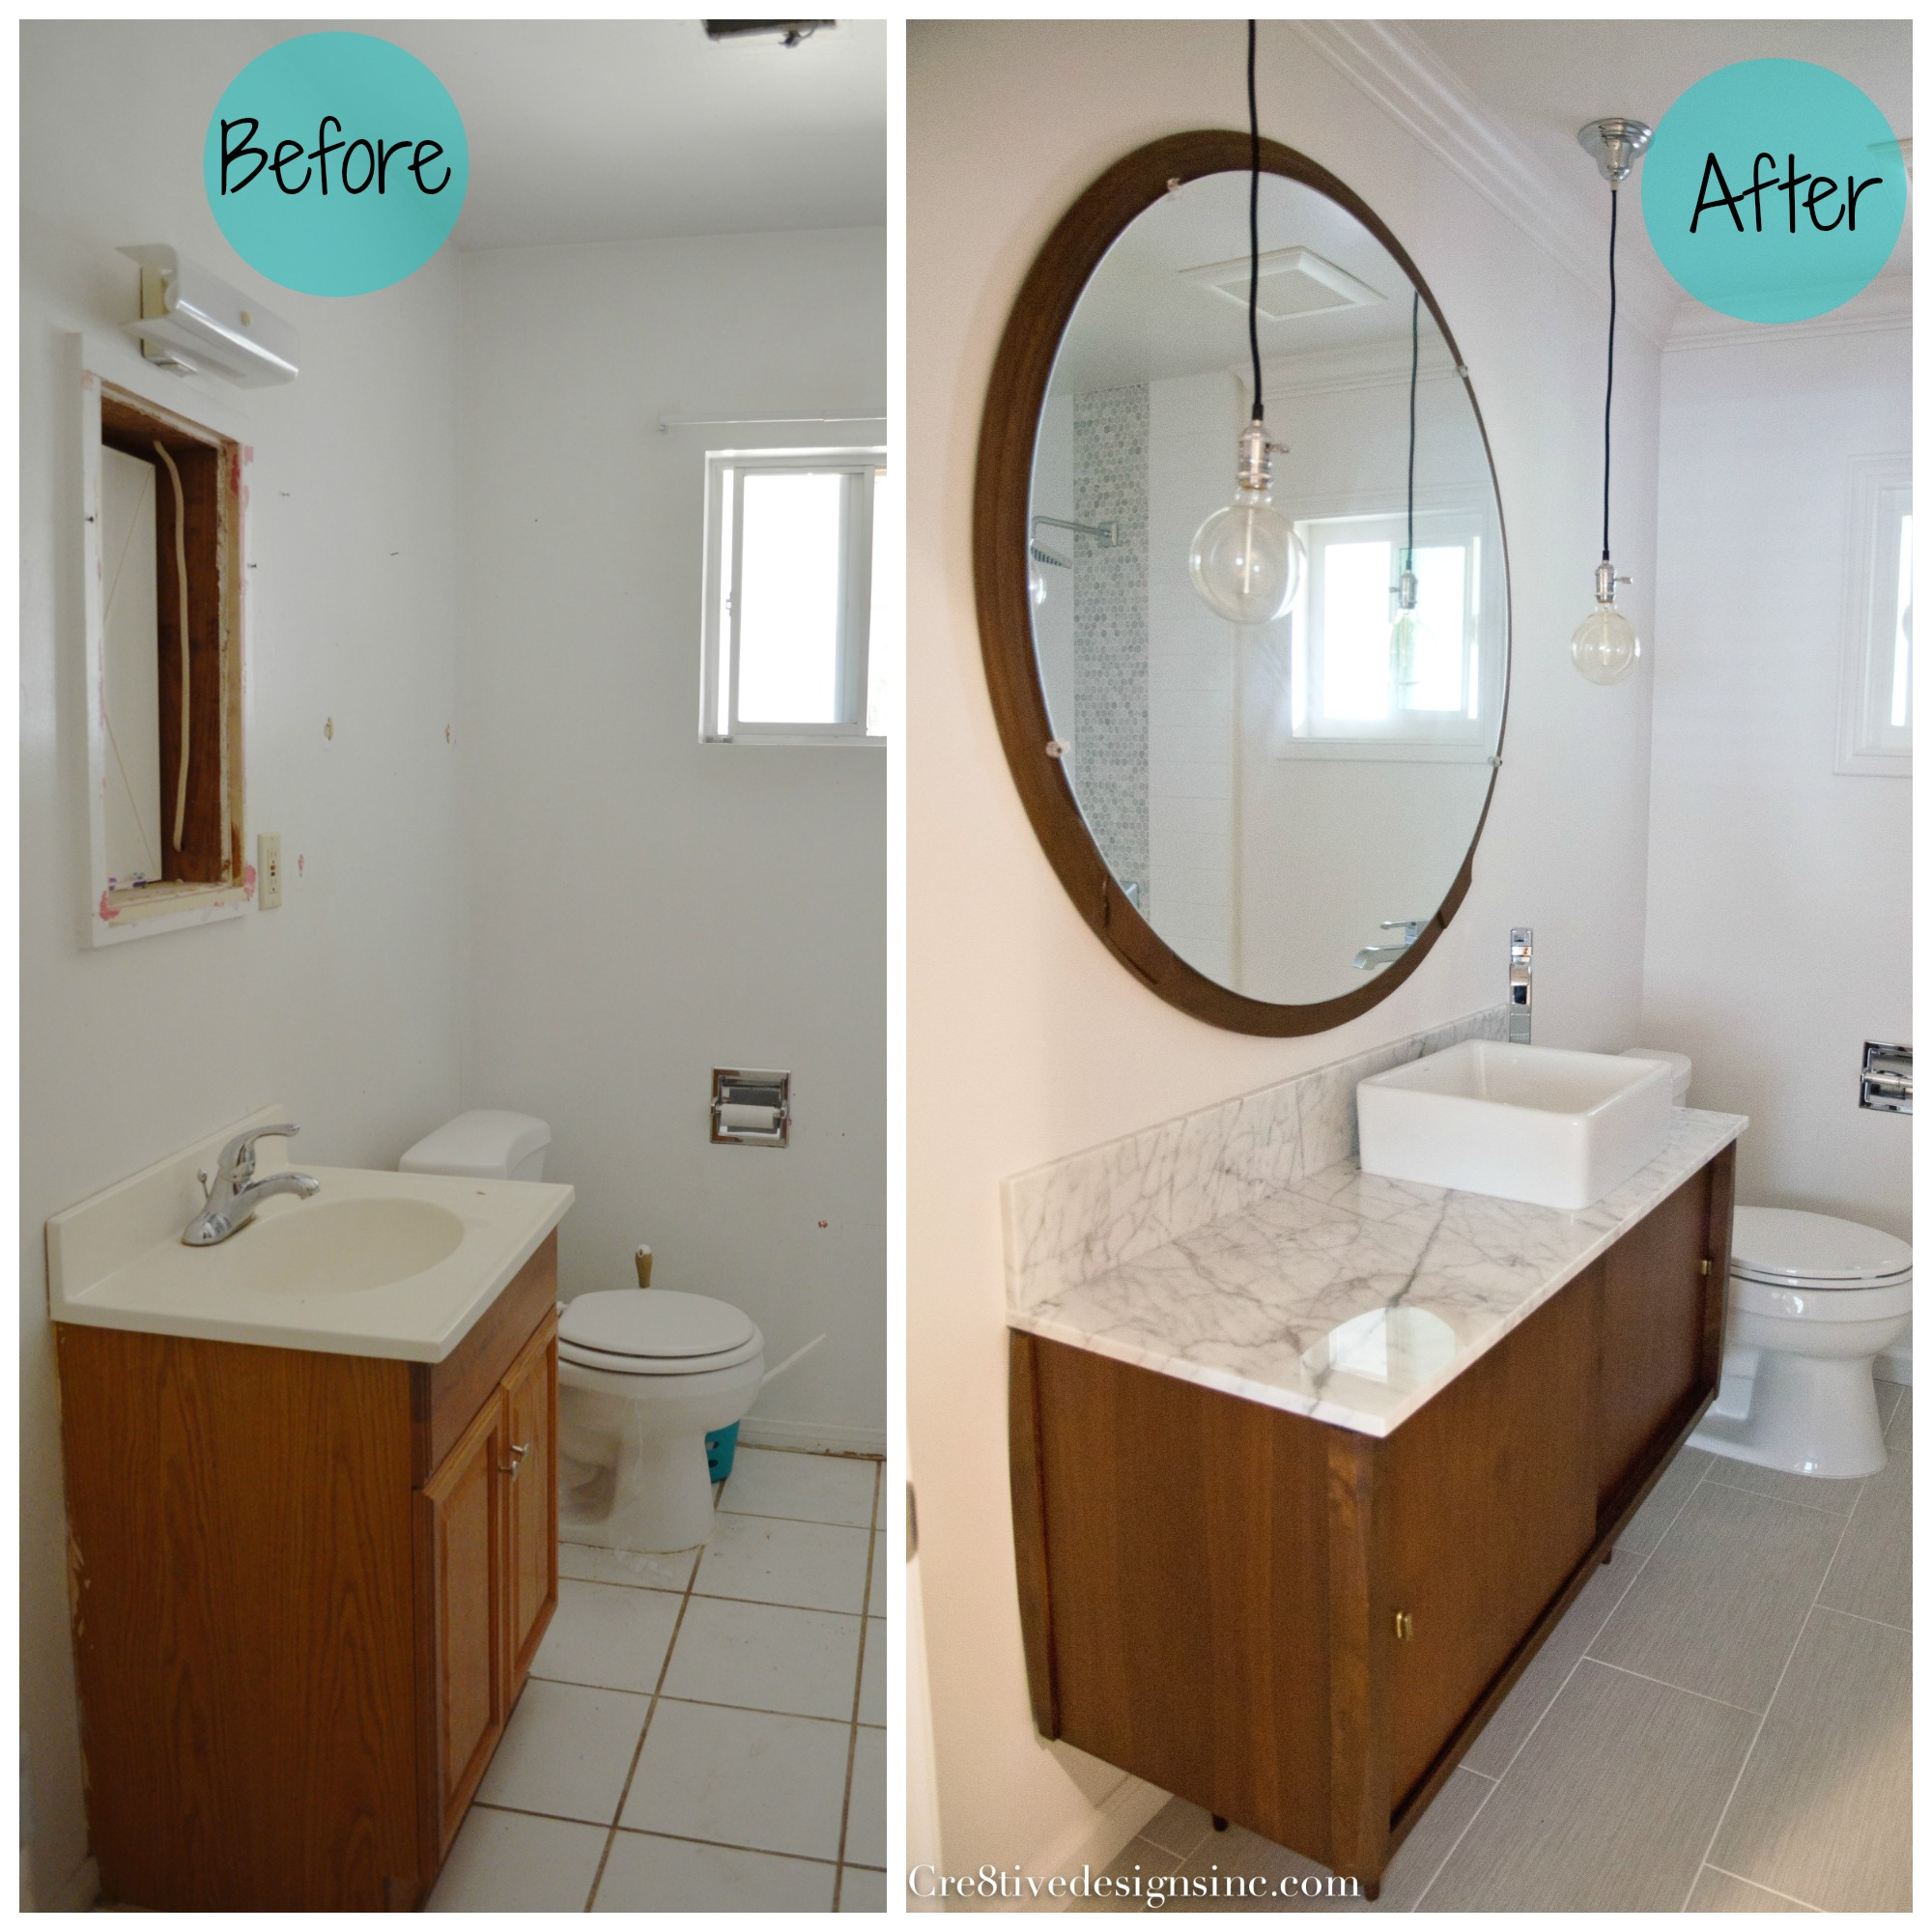 Nice before and after Mid century modern bathroom